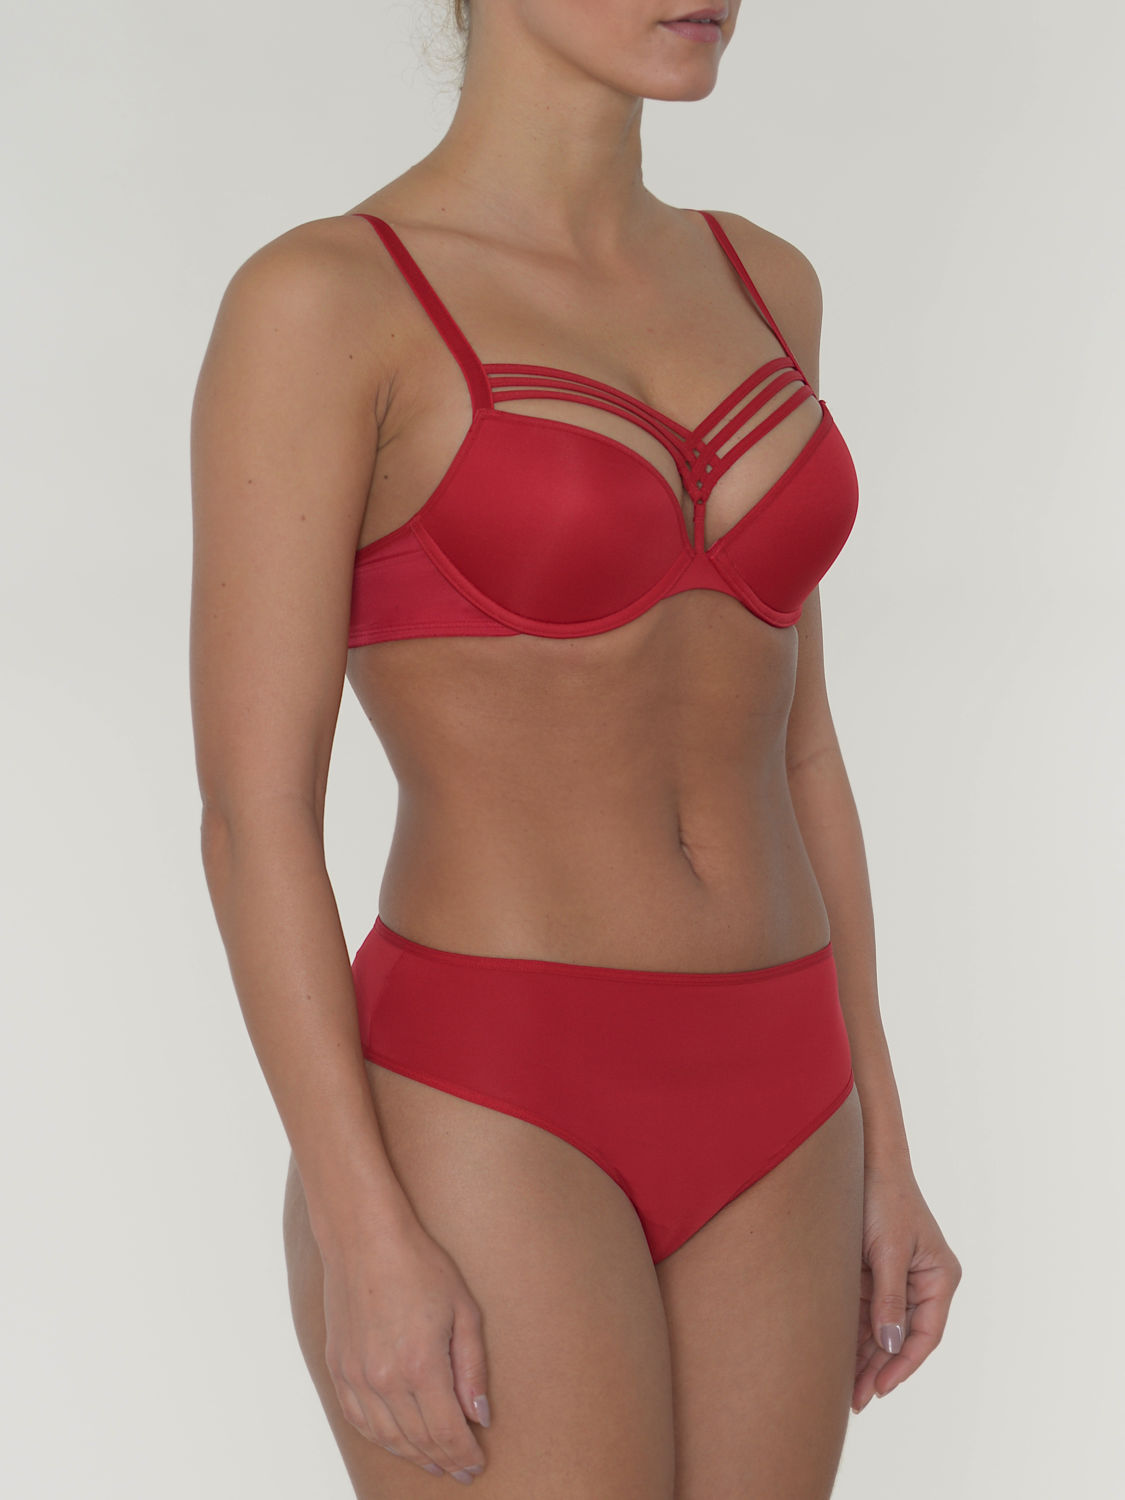 Marlies Dekkers Push-Up BH Dame de Paris Farbe Rot